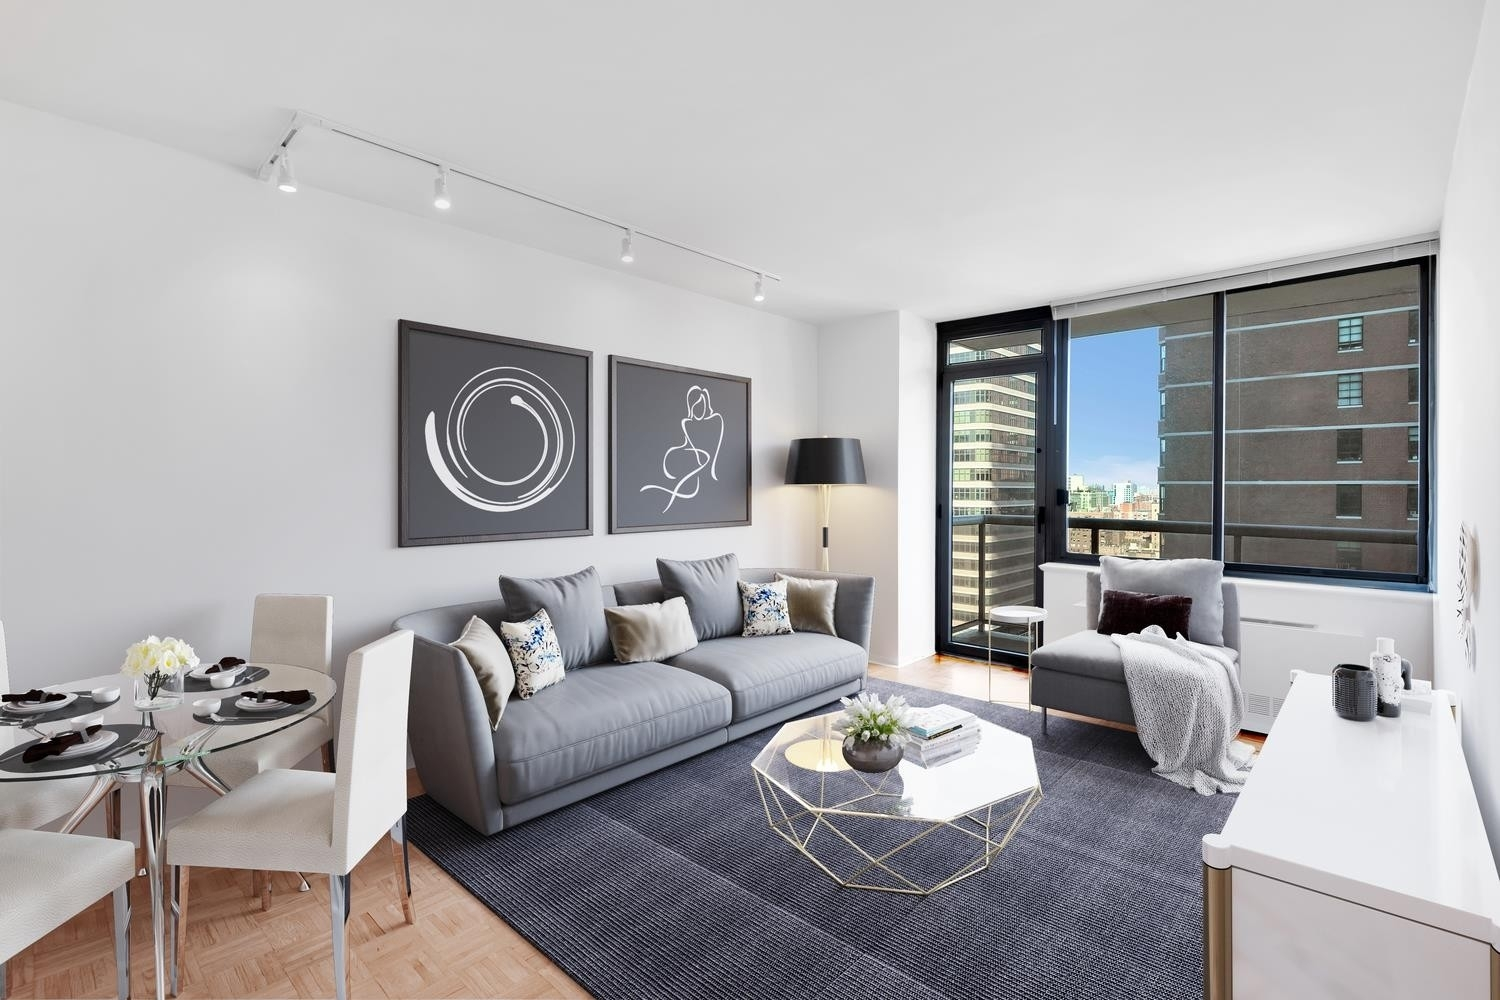 Condominium at 200 East 89th St, 17D Yorkville, New York, NY 10128